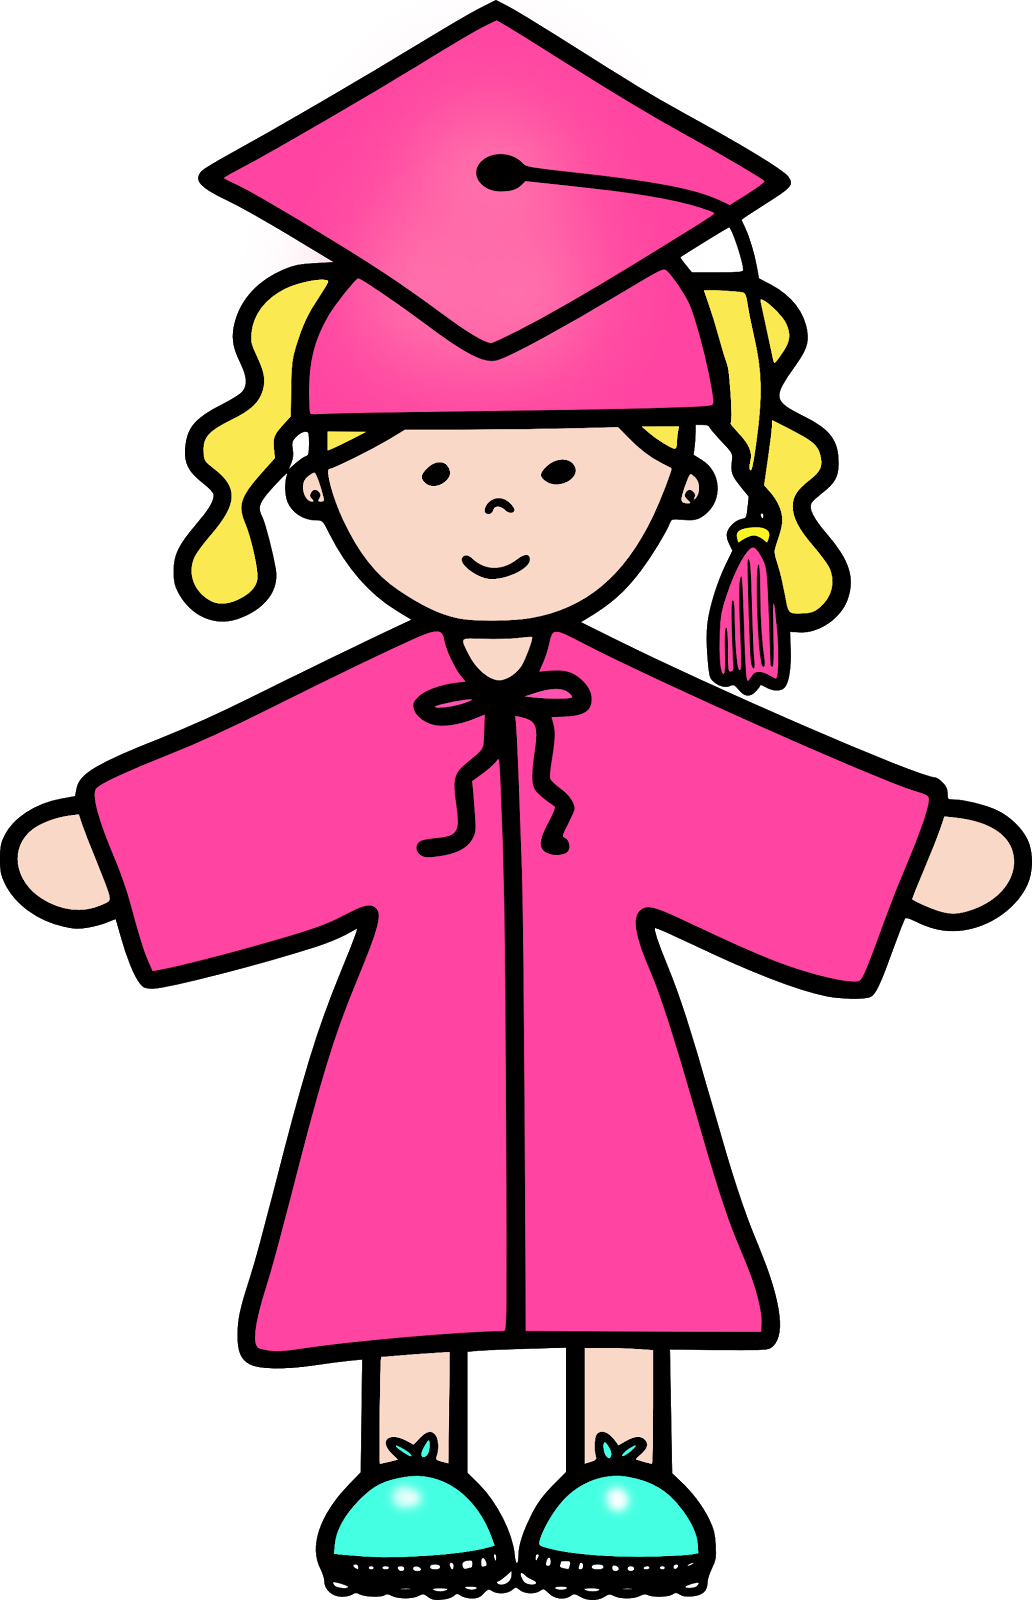 Poetry clipart female poet. Graduation preschool graduates clip